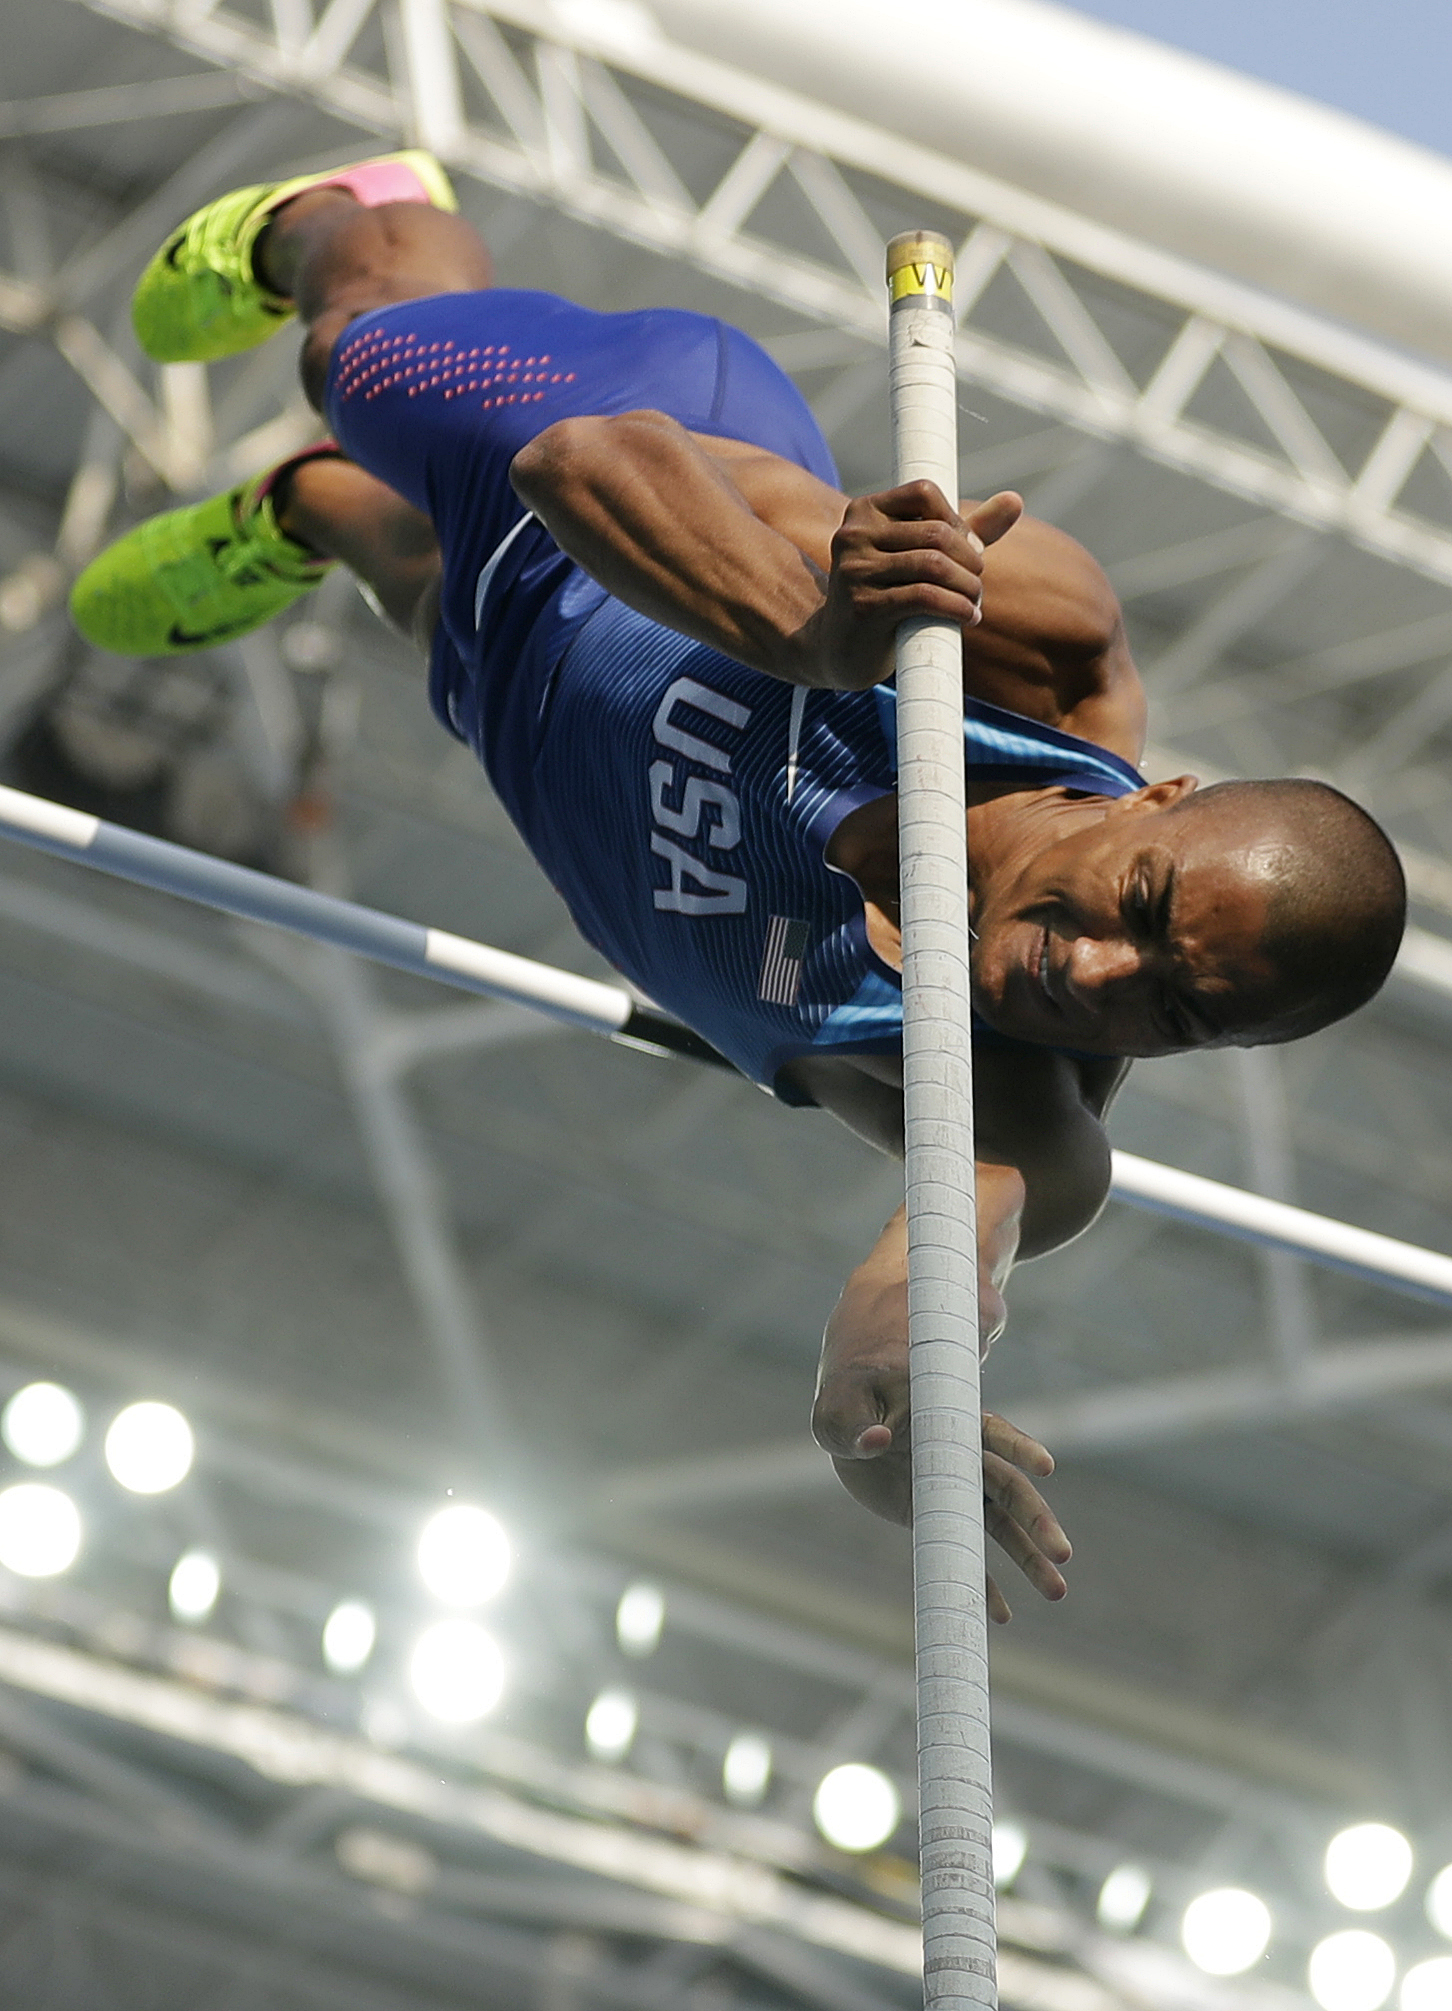 United States' Ashton Eaton competes in men's decathlon pole vault during the athletics competitions of the 2016 Summer Olympics at the Olympic stadium in Rio de Janeiro, Brazil, Thursday, Aug. 18, 2016. (AP Photo/Matt Dunham)